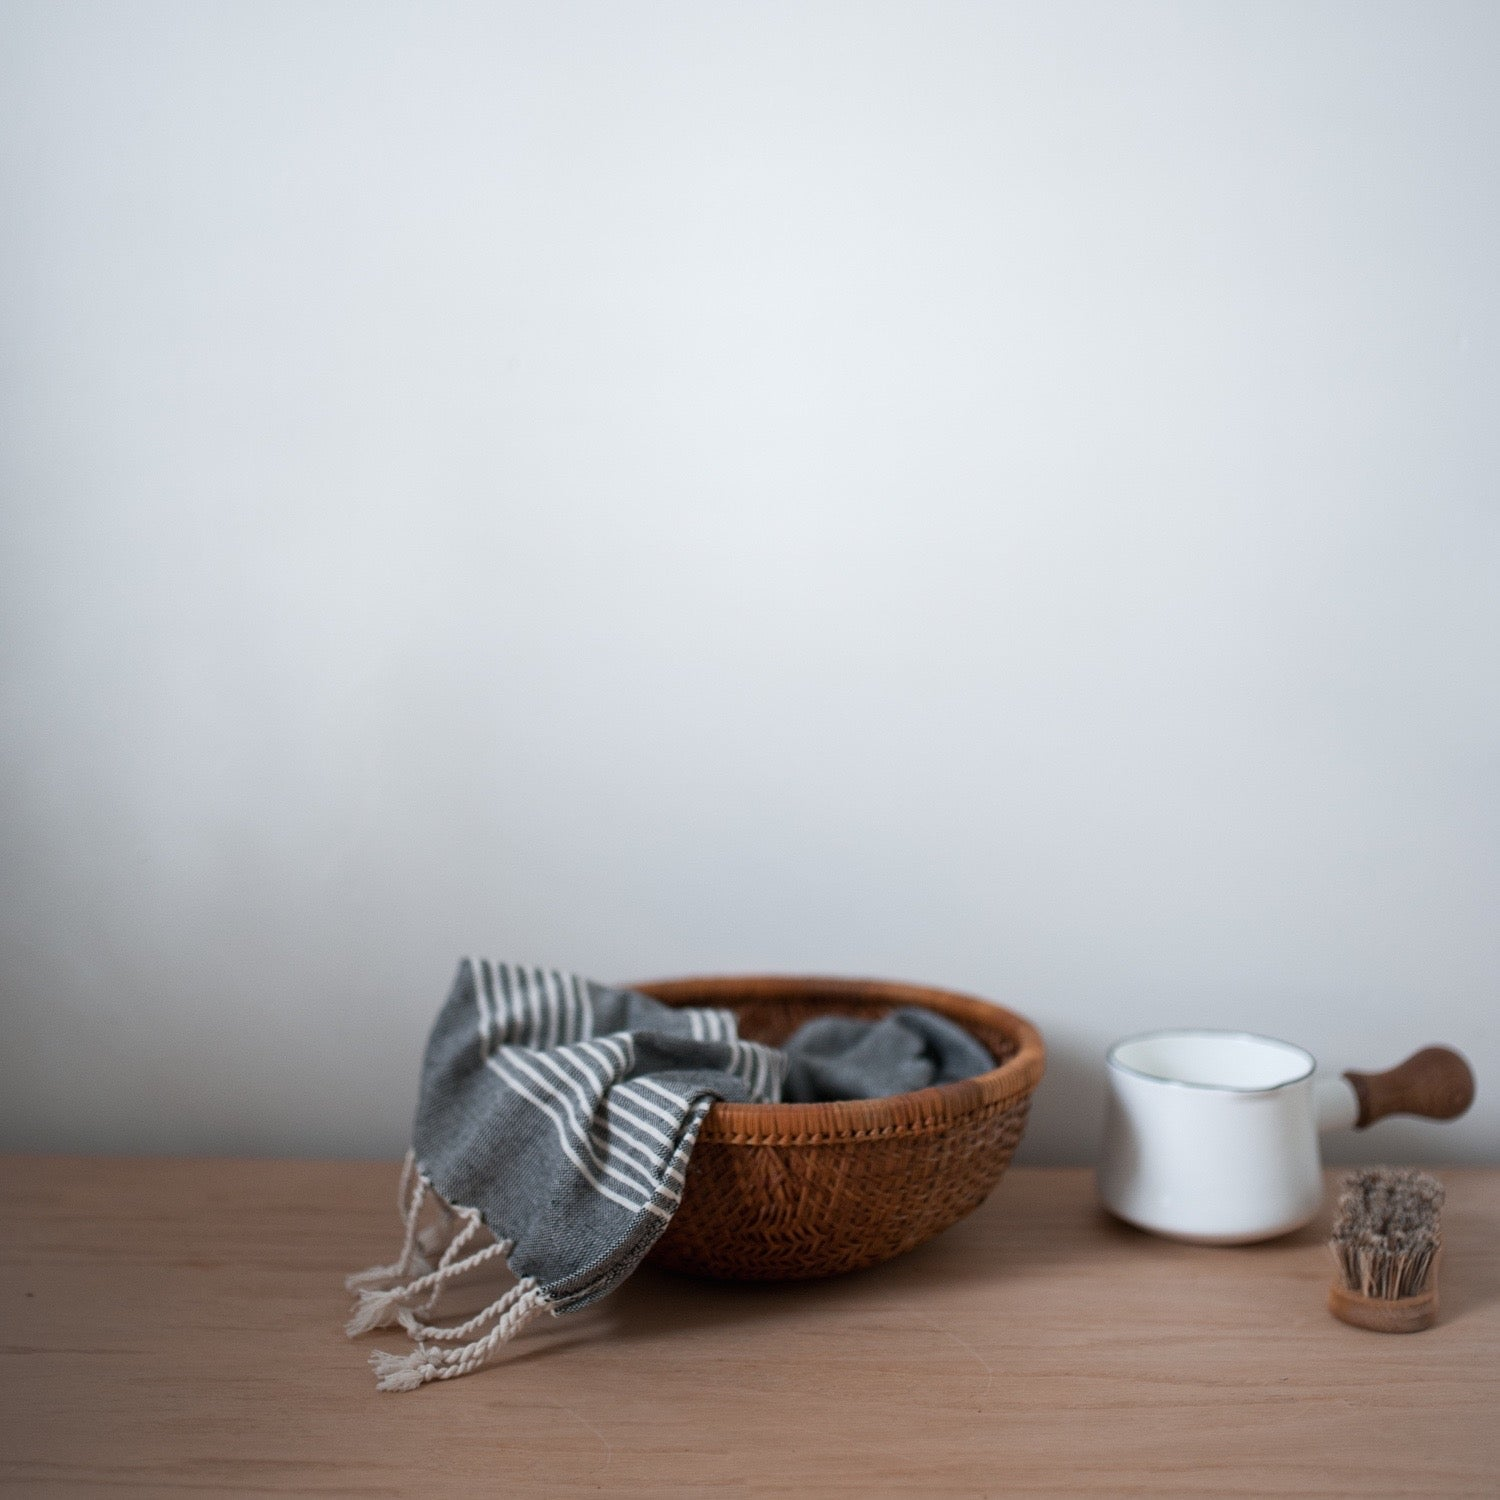 Charcoal grey turkish hand towel in a woven basket.